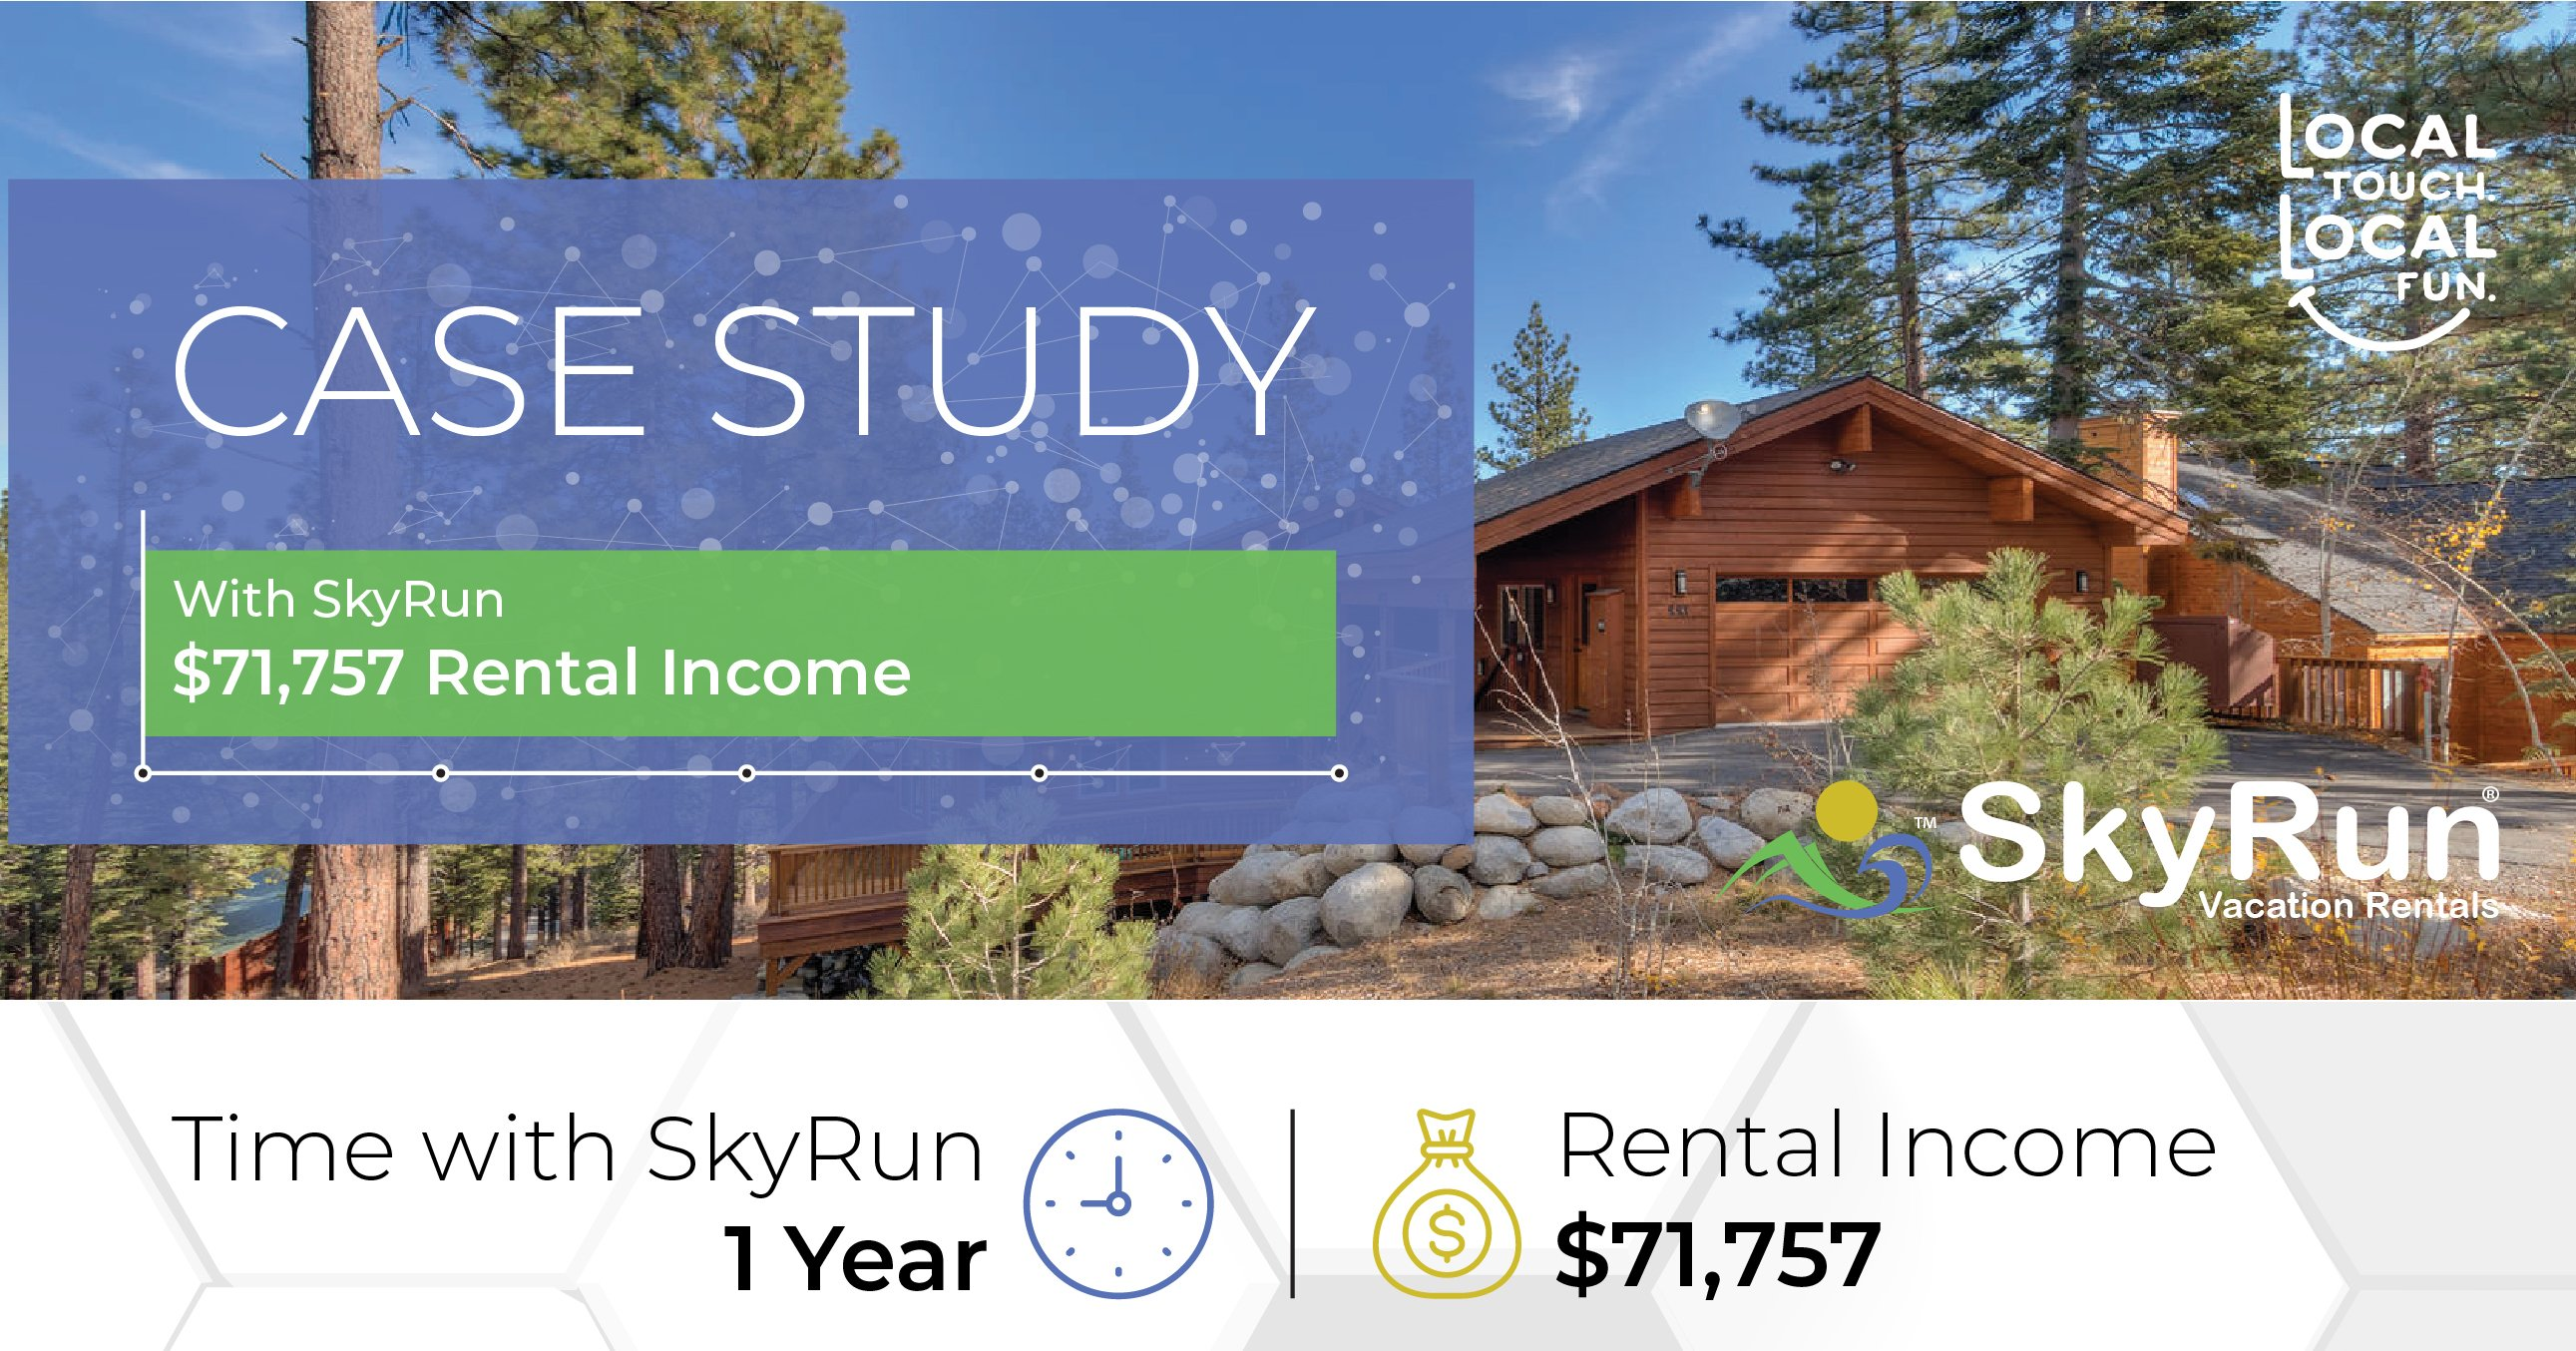 1 Year with SkyRun and $71,757 in Rental Income!